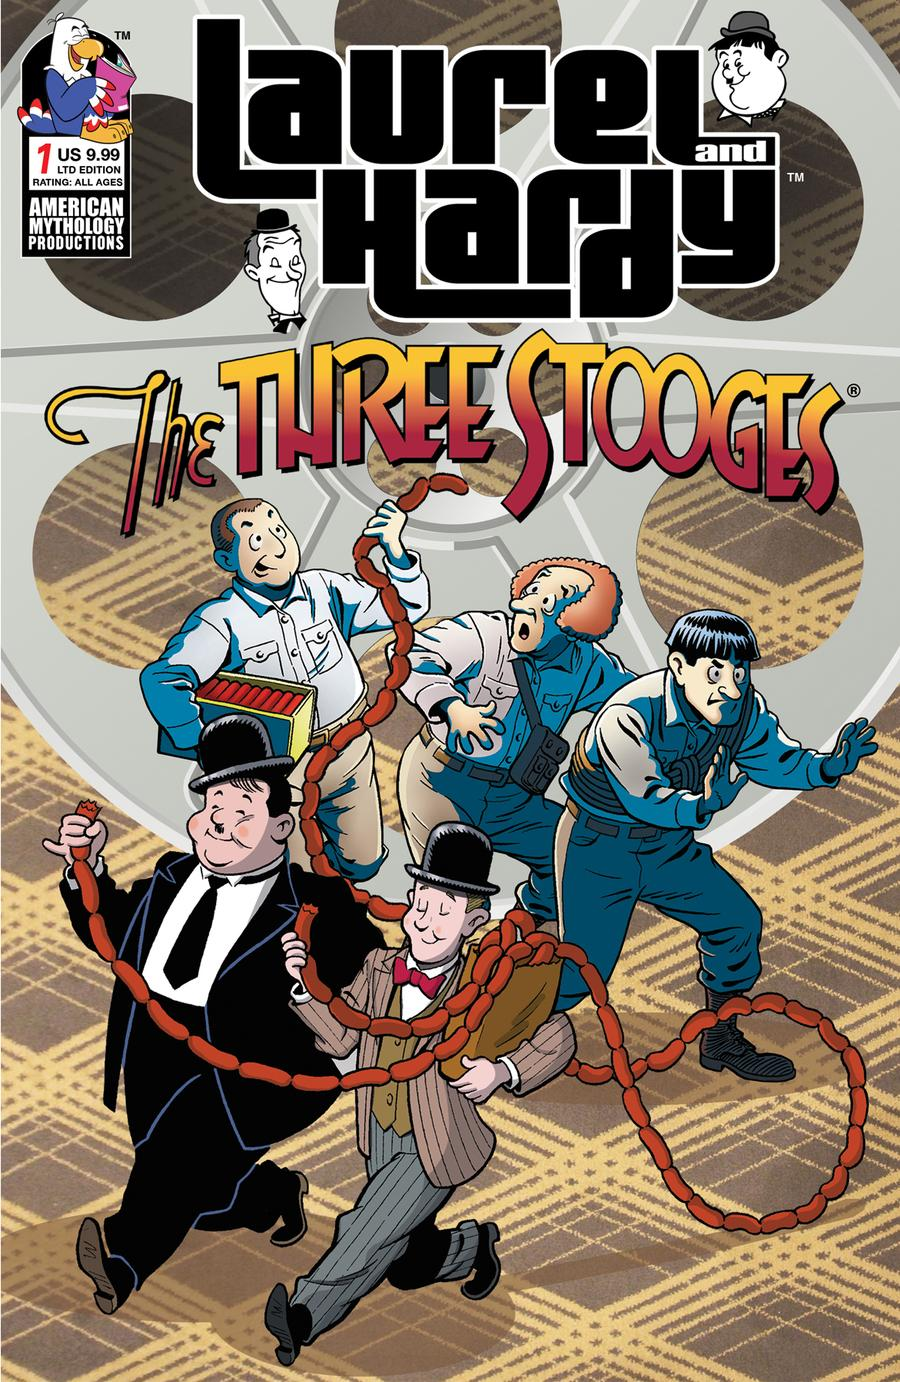 Laurel And Hardy Meet The Three Stooges #1 Cover C Limited Edition Class Cartoon Variant Cover